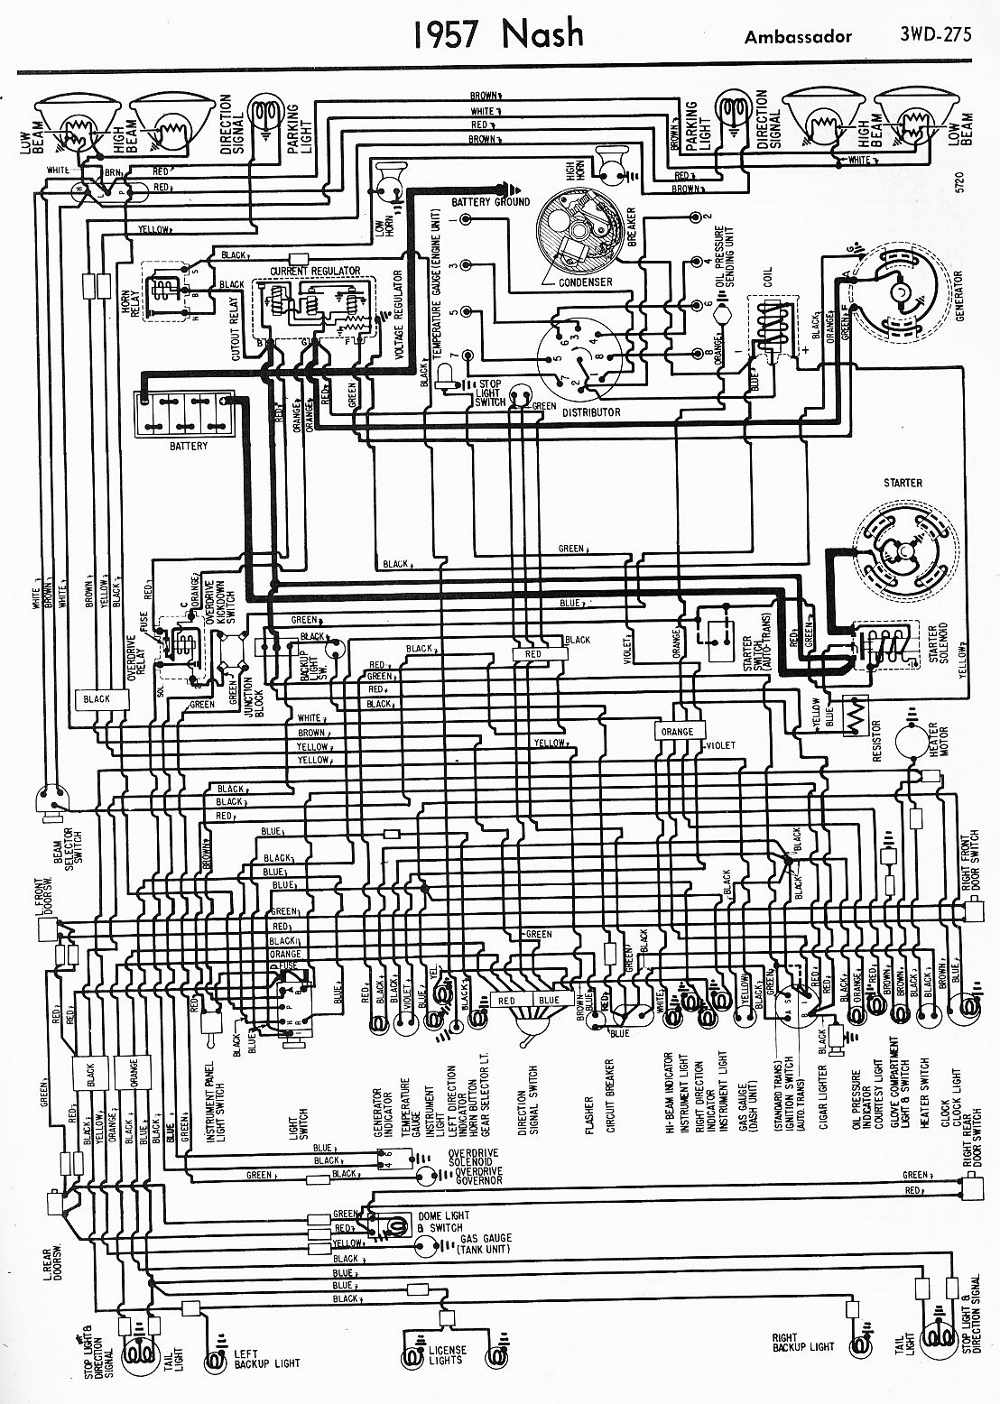 1957 Pontiac Wire Diagram Wiring Library Vw Download